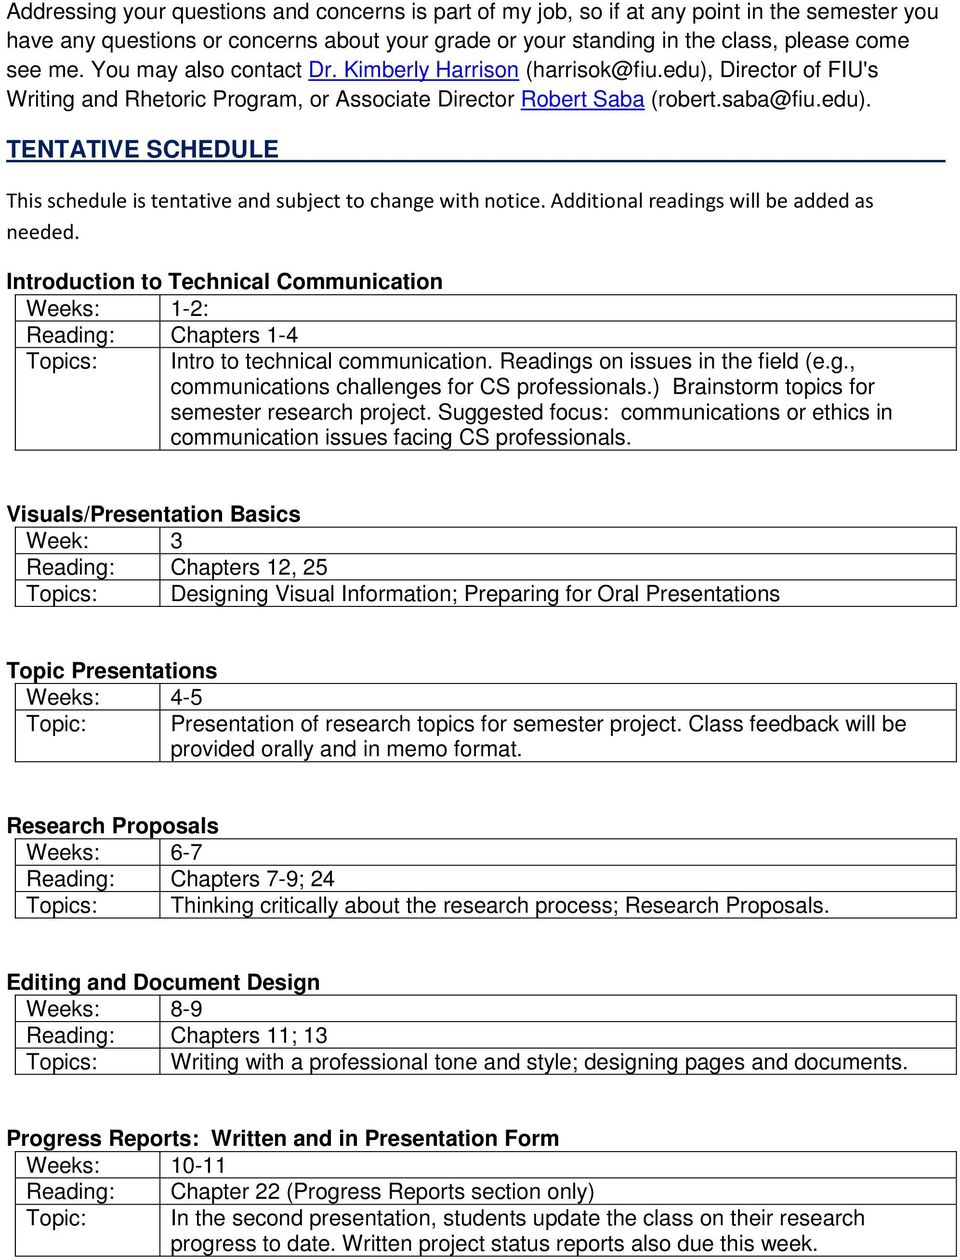 Esl dissertation proposal editing for hire gb hopitality resume